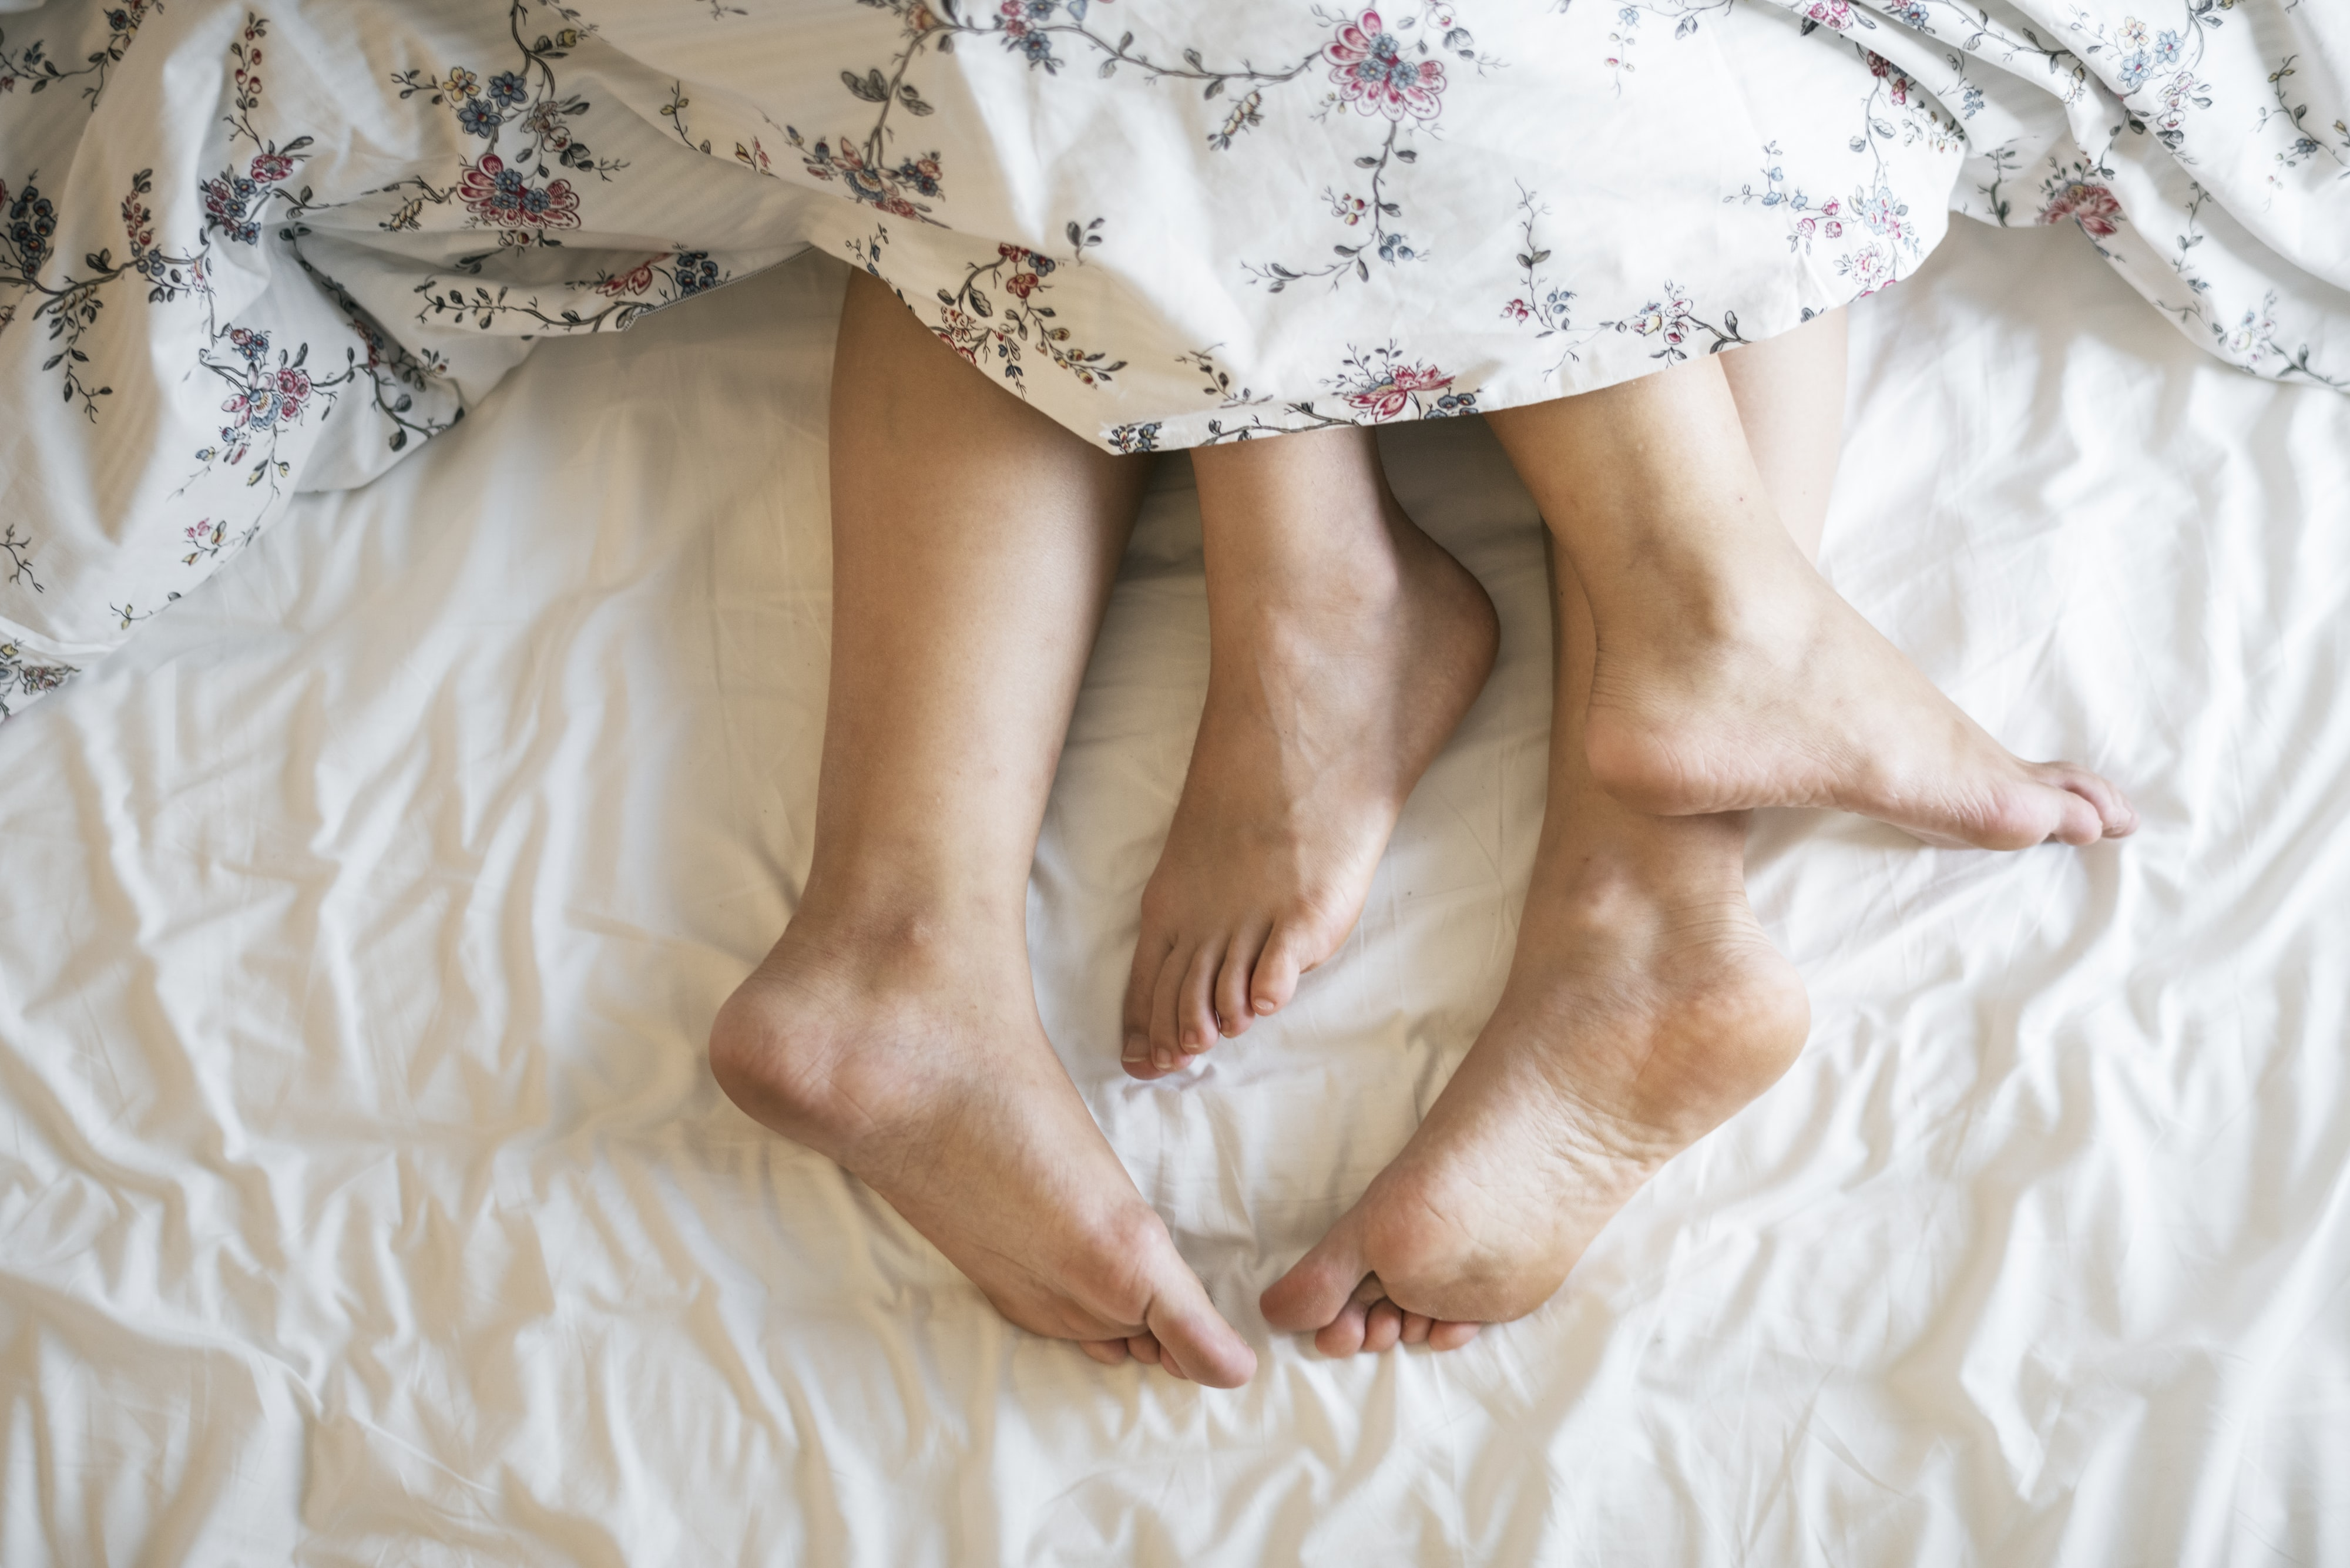 feet of two people on bed